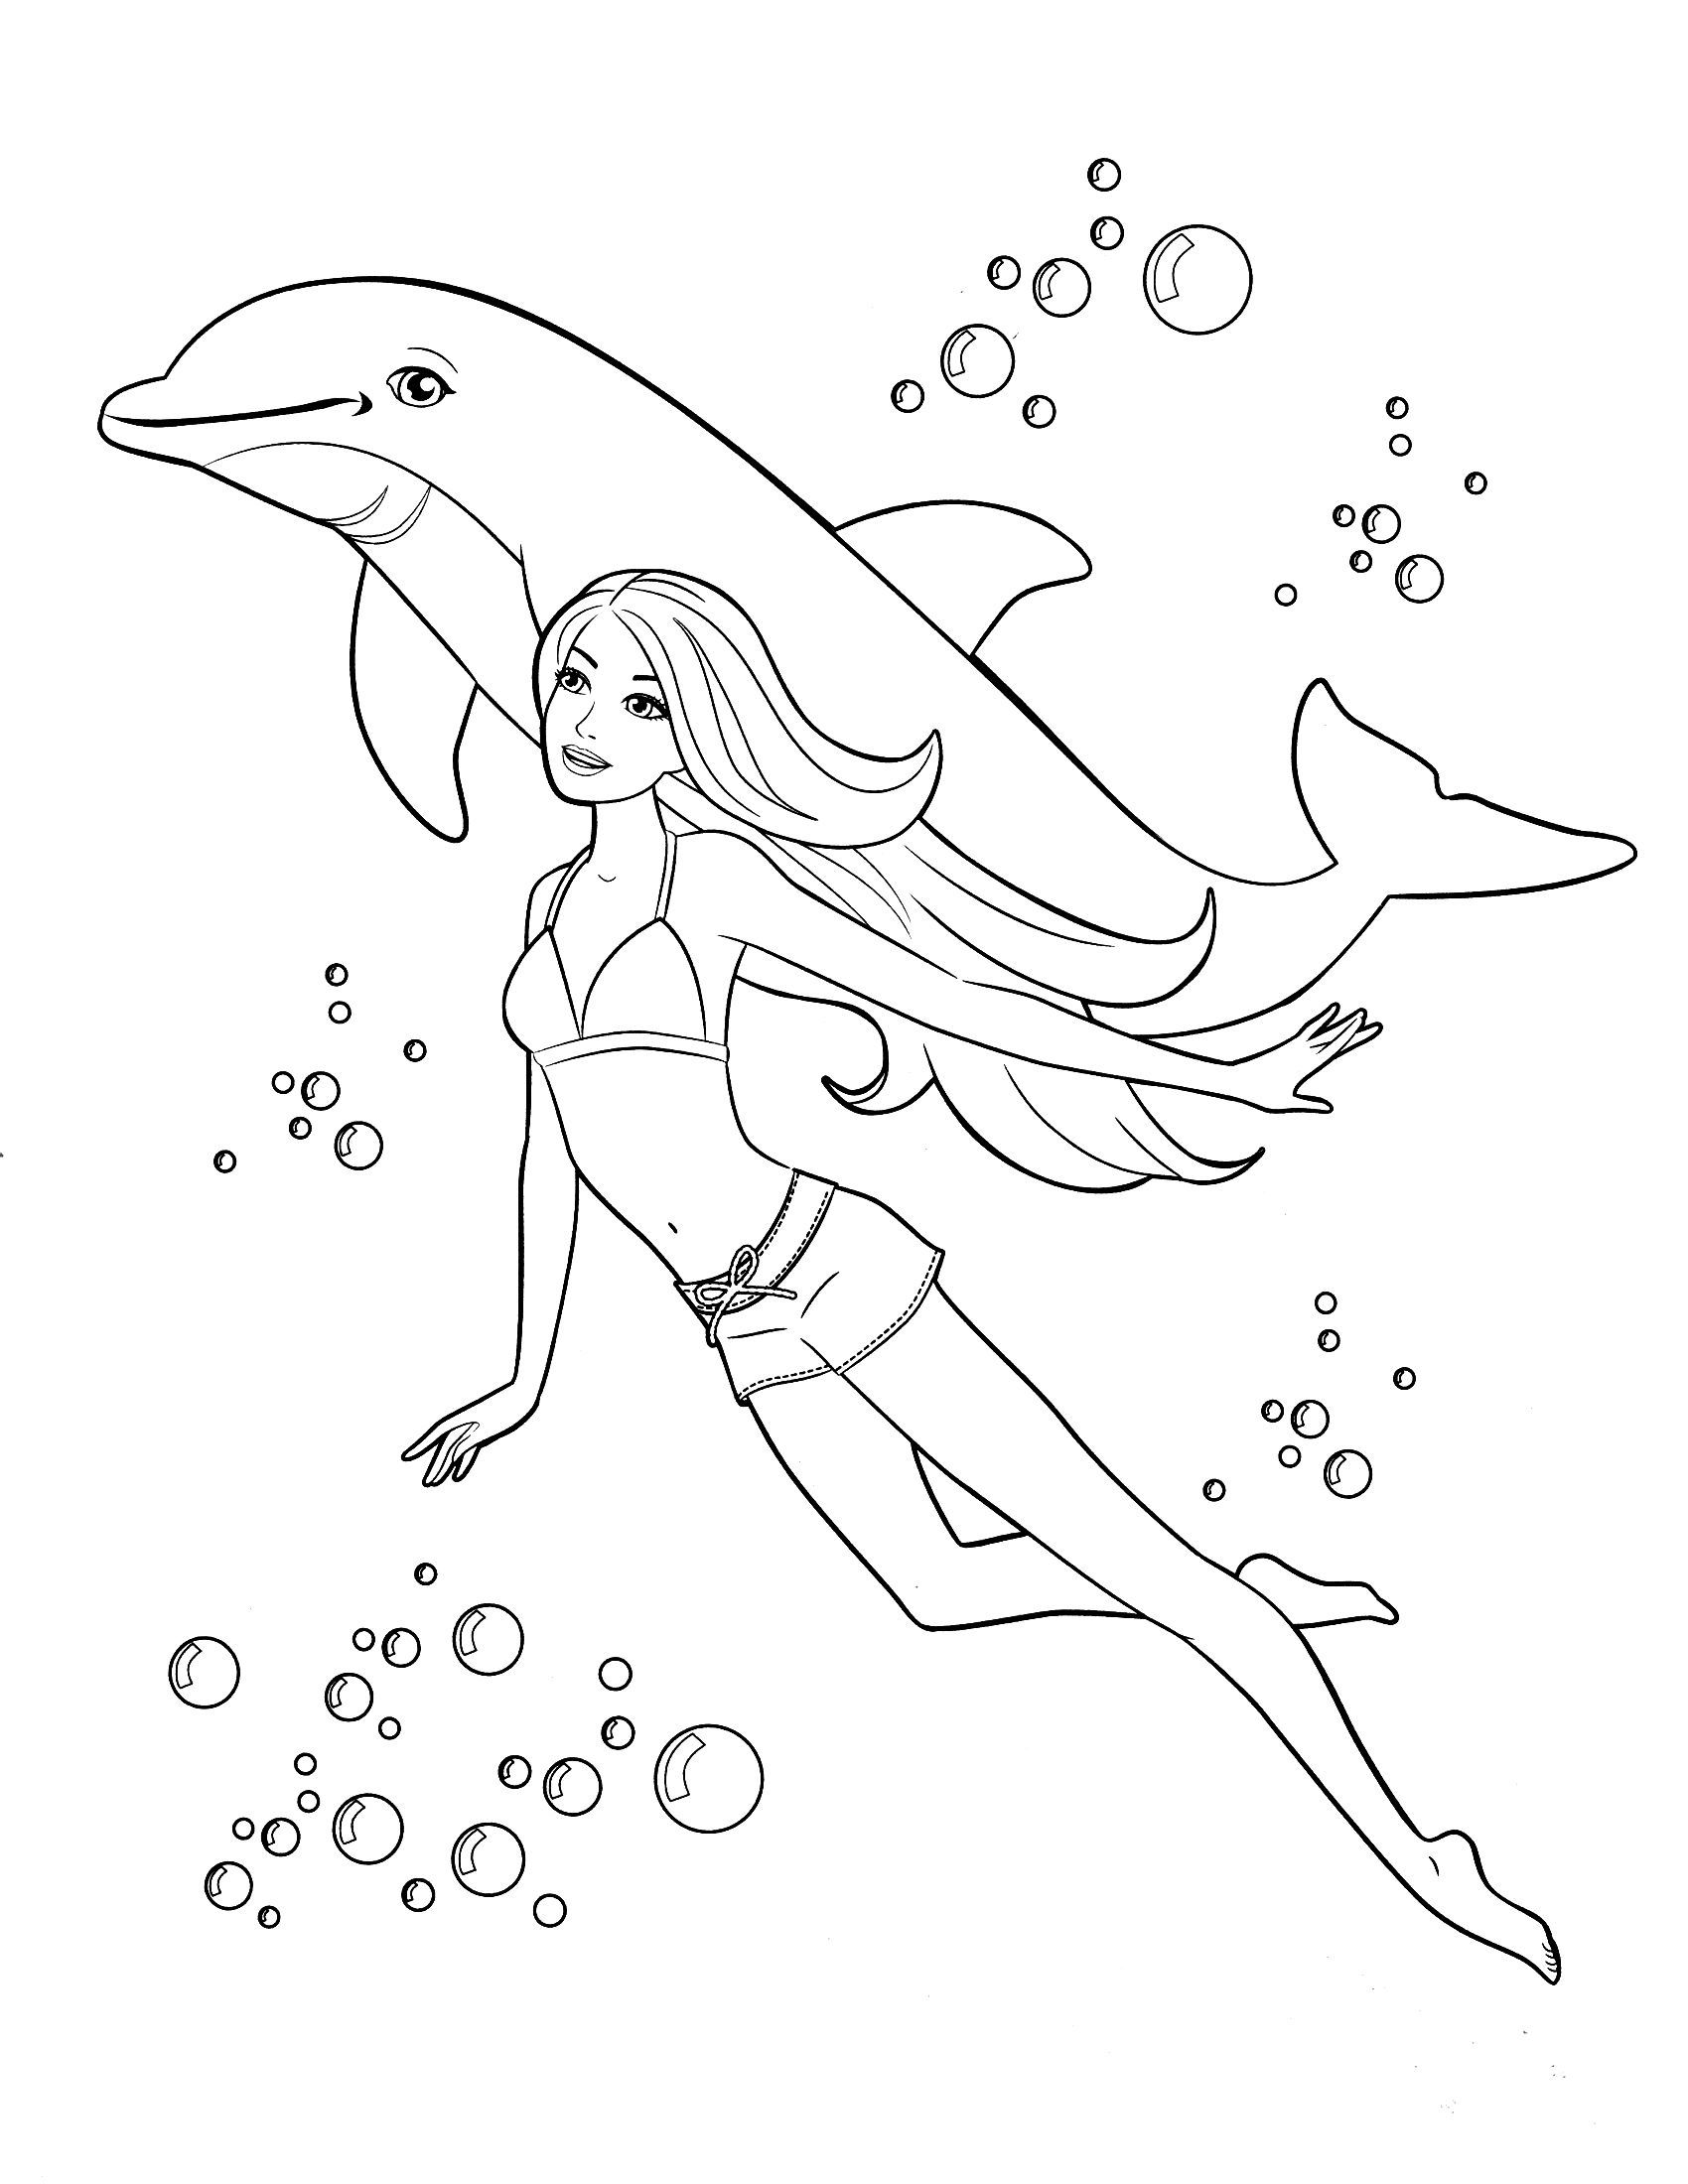 Barbie Dolphin Magic Coloring Barbie Coloring Pages Dolphin Coloring Pages Princess Coloring Pages